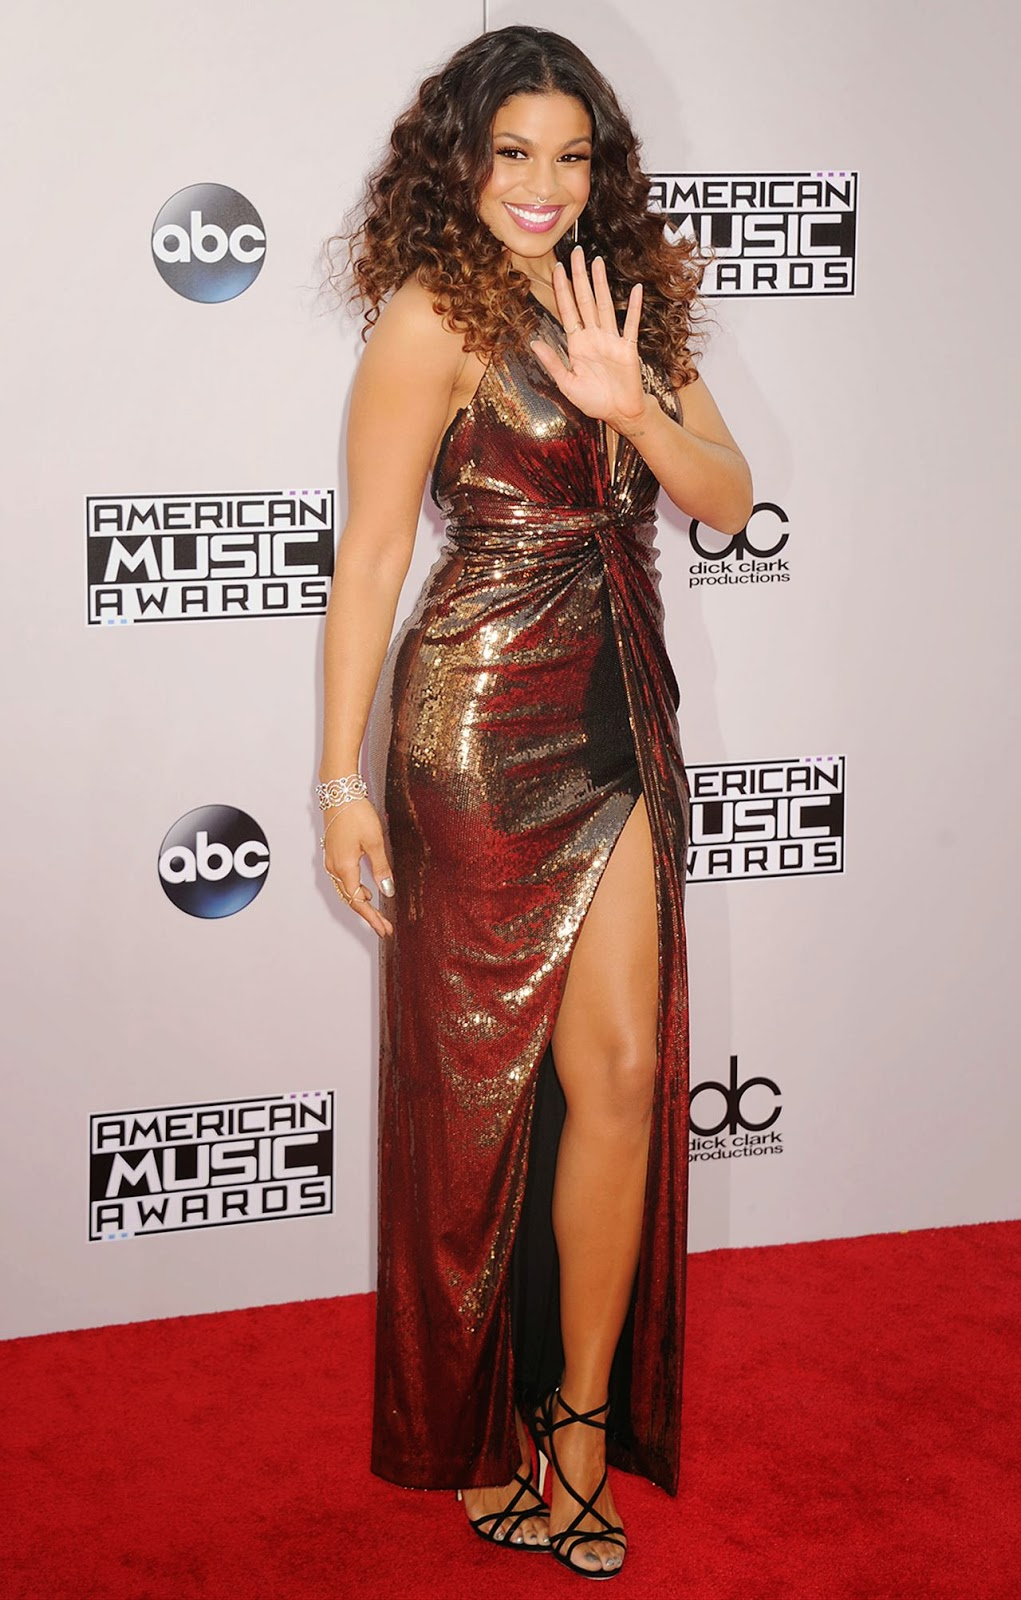 Jordin Sparks in a sequinned bronzed Halston Heritage gown at the 2014 American Music Awards